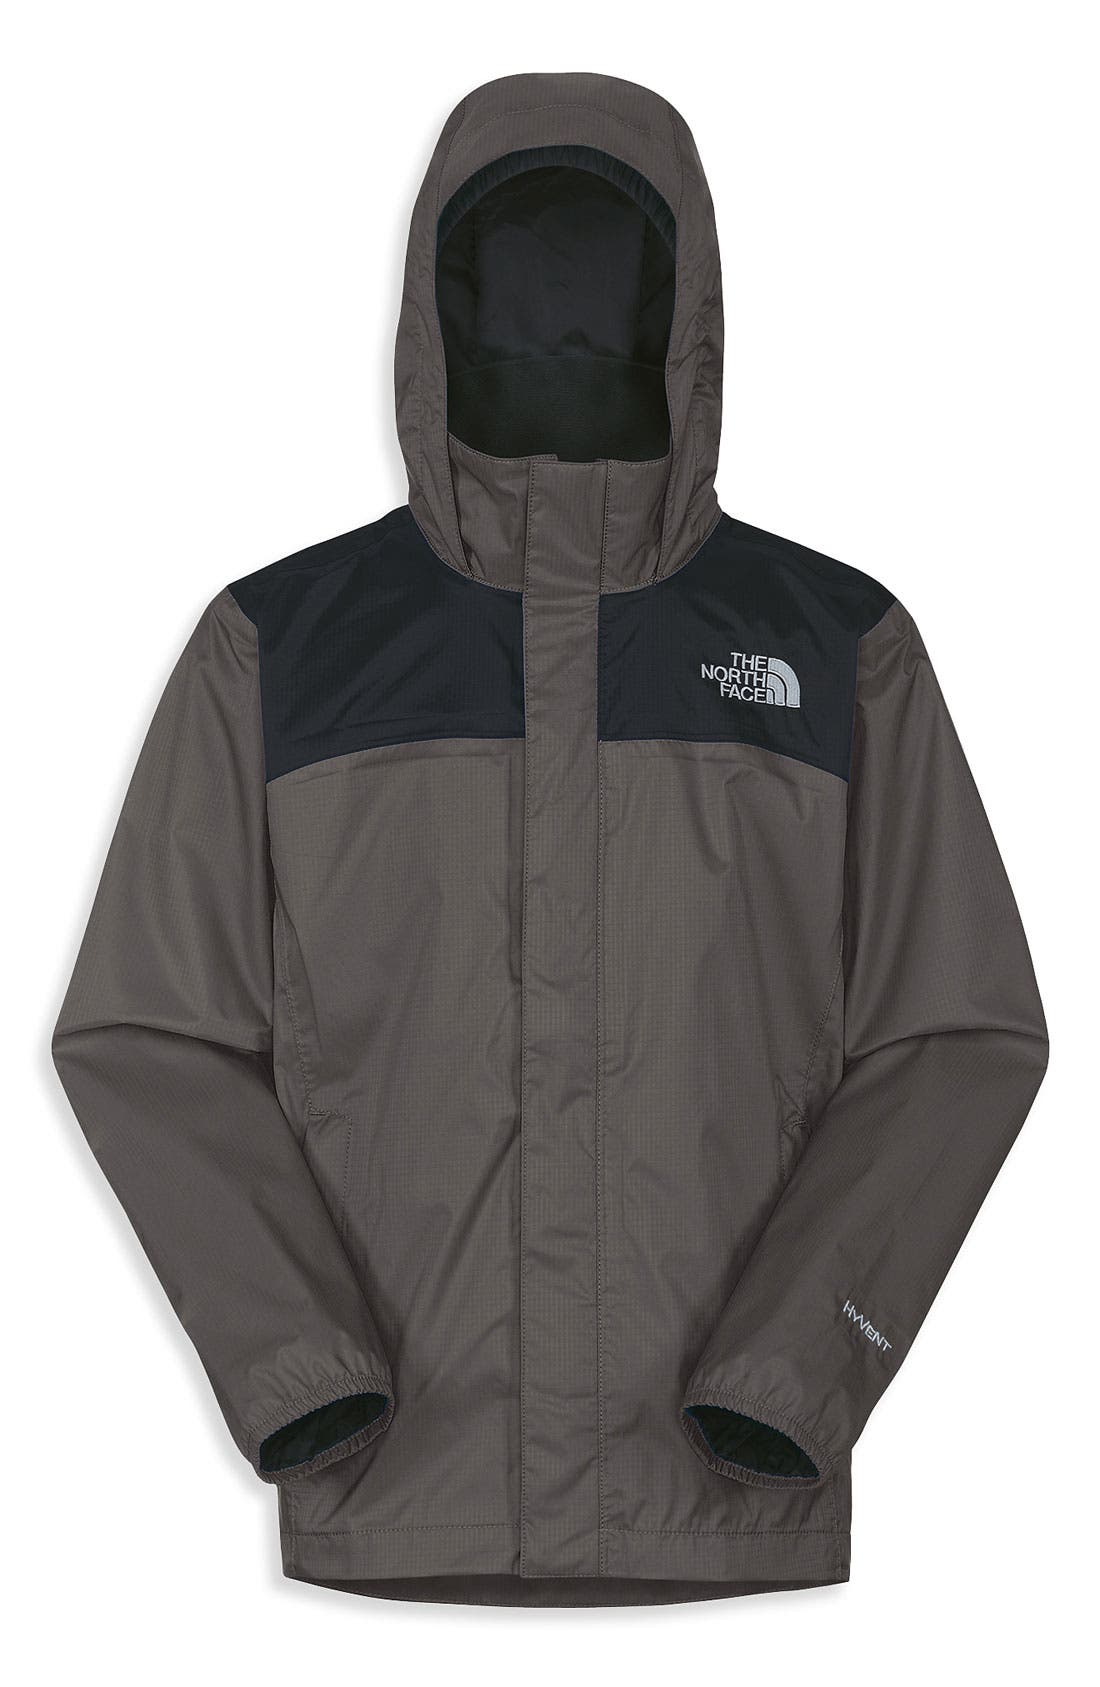 Alternate Image 1 Selected - The North Face 'Resolve' Jacket (Big Boys)